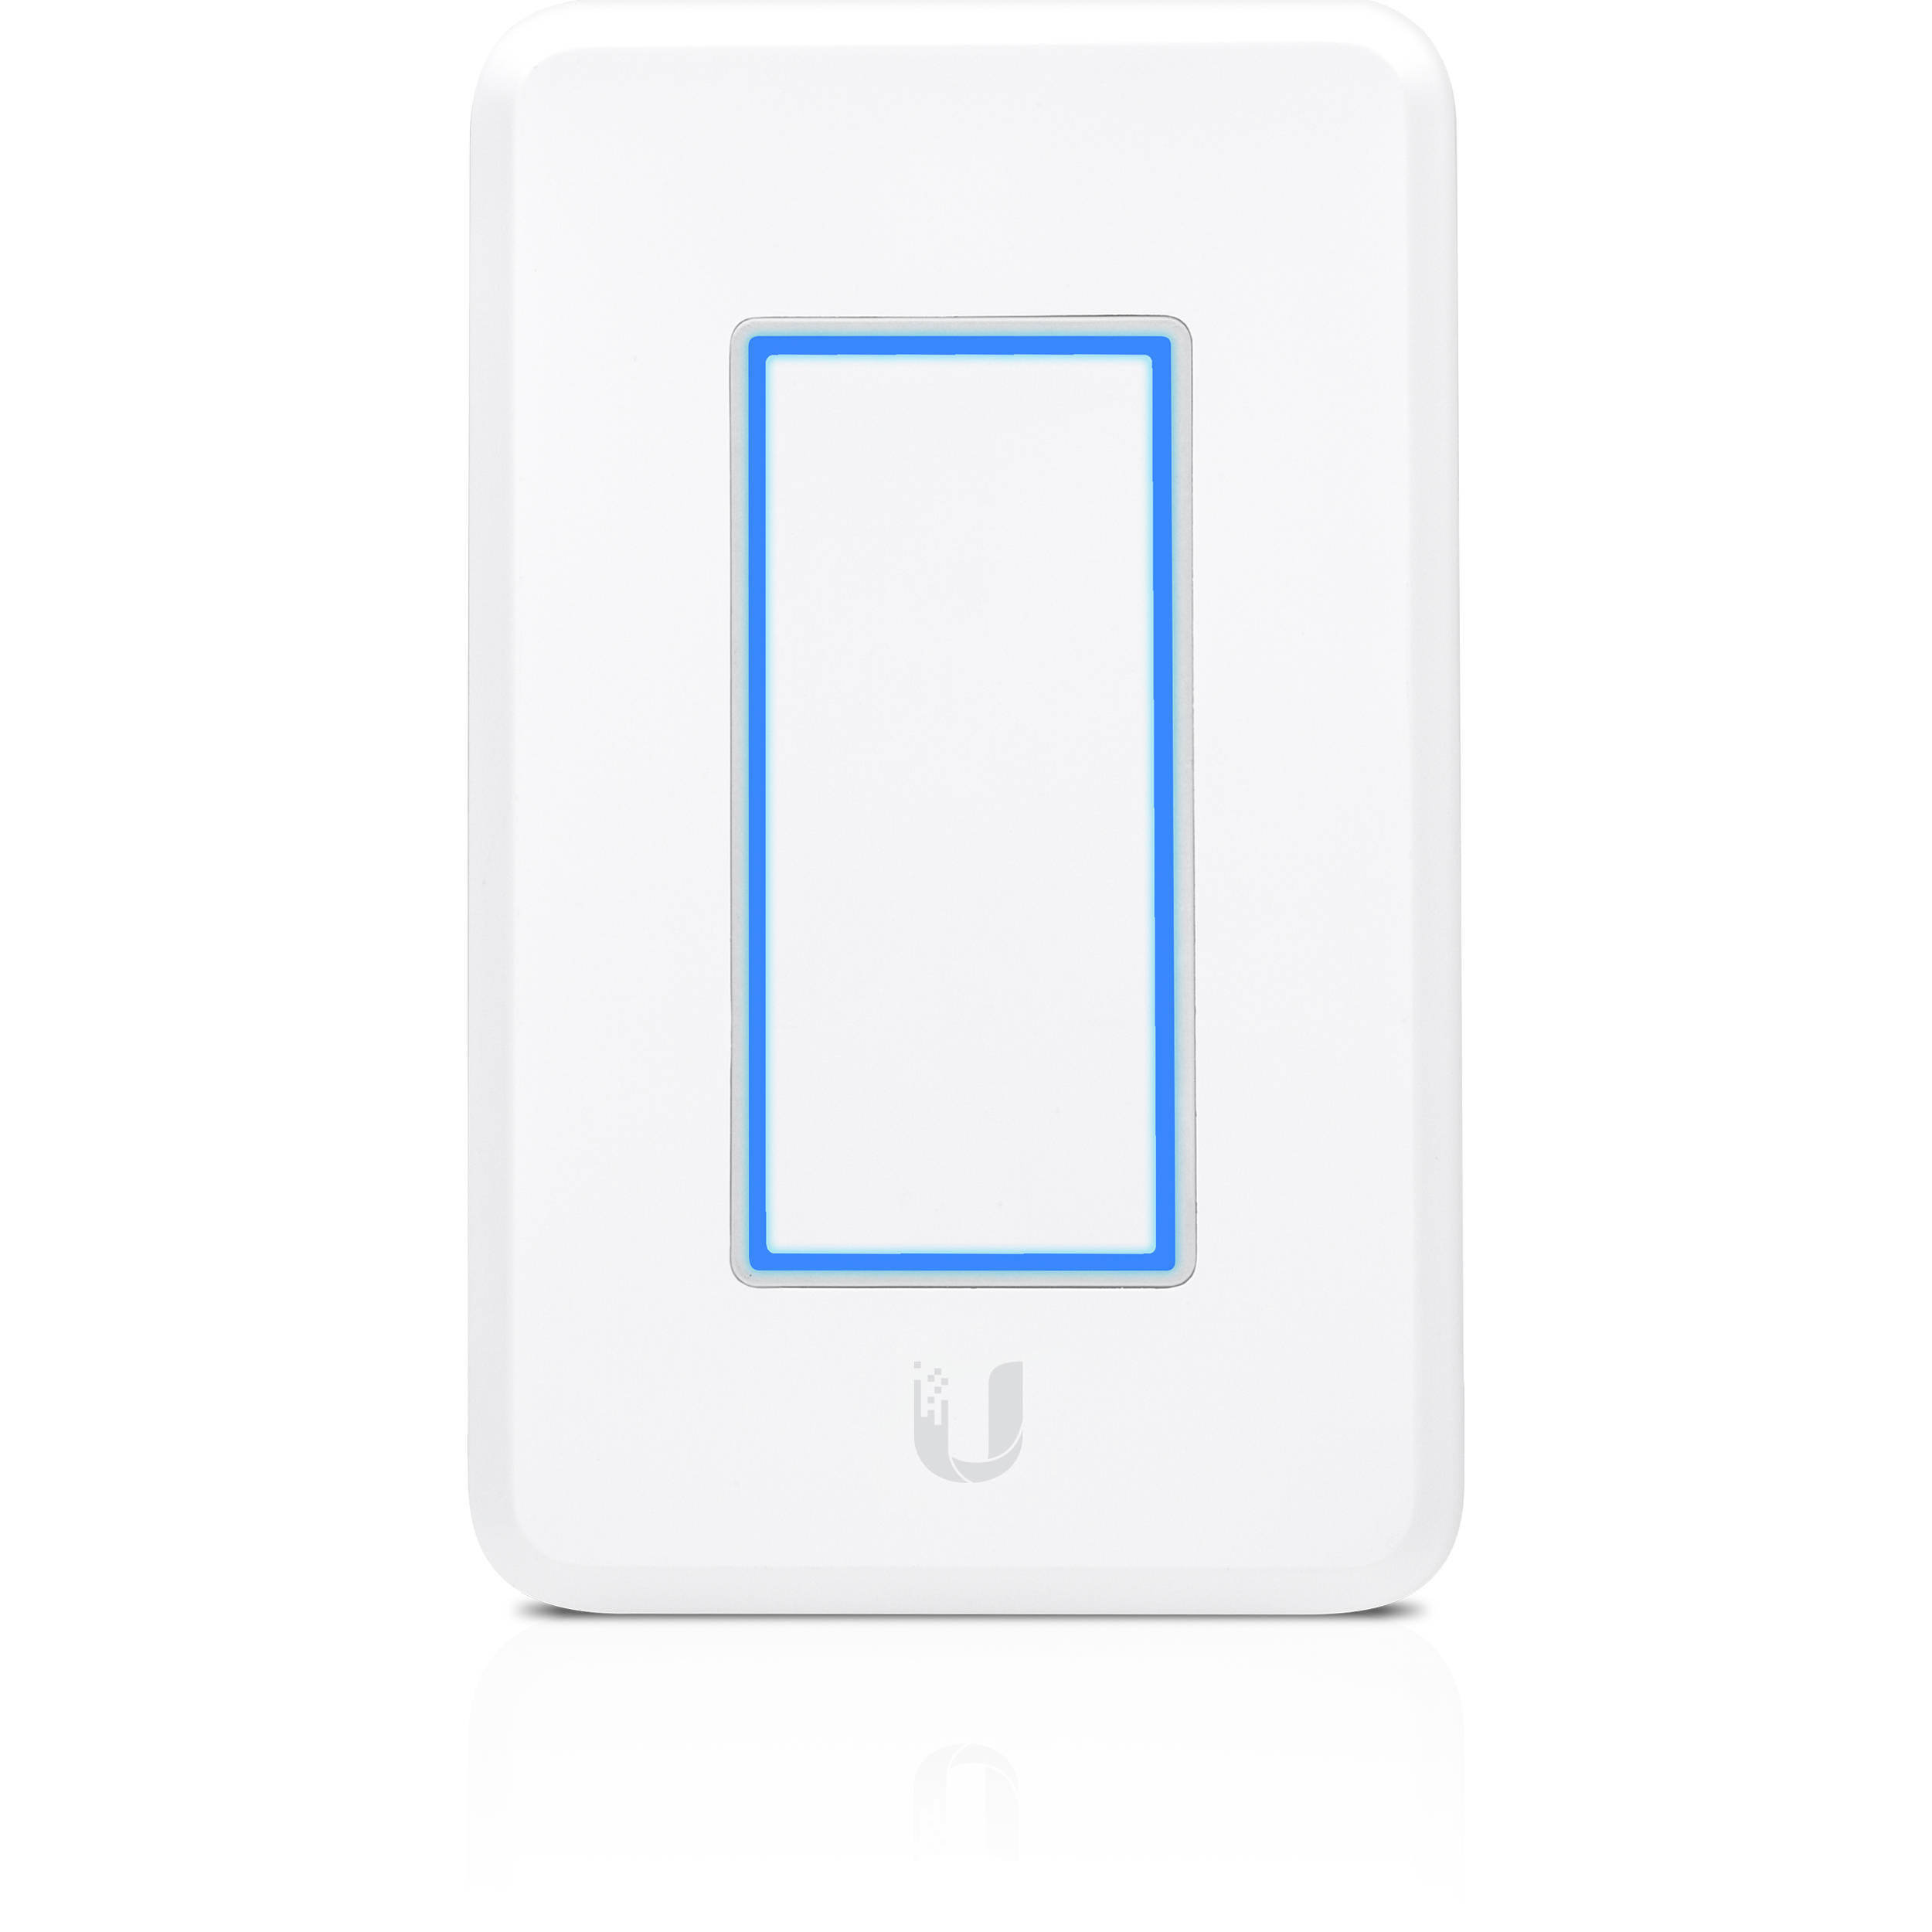 Ubiquiti Networks UniFi Light Dimmer for unifi LED lights, PoE Powered